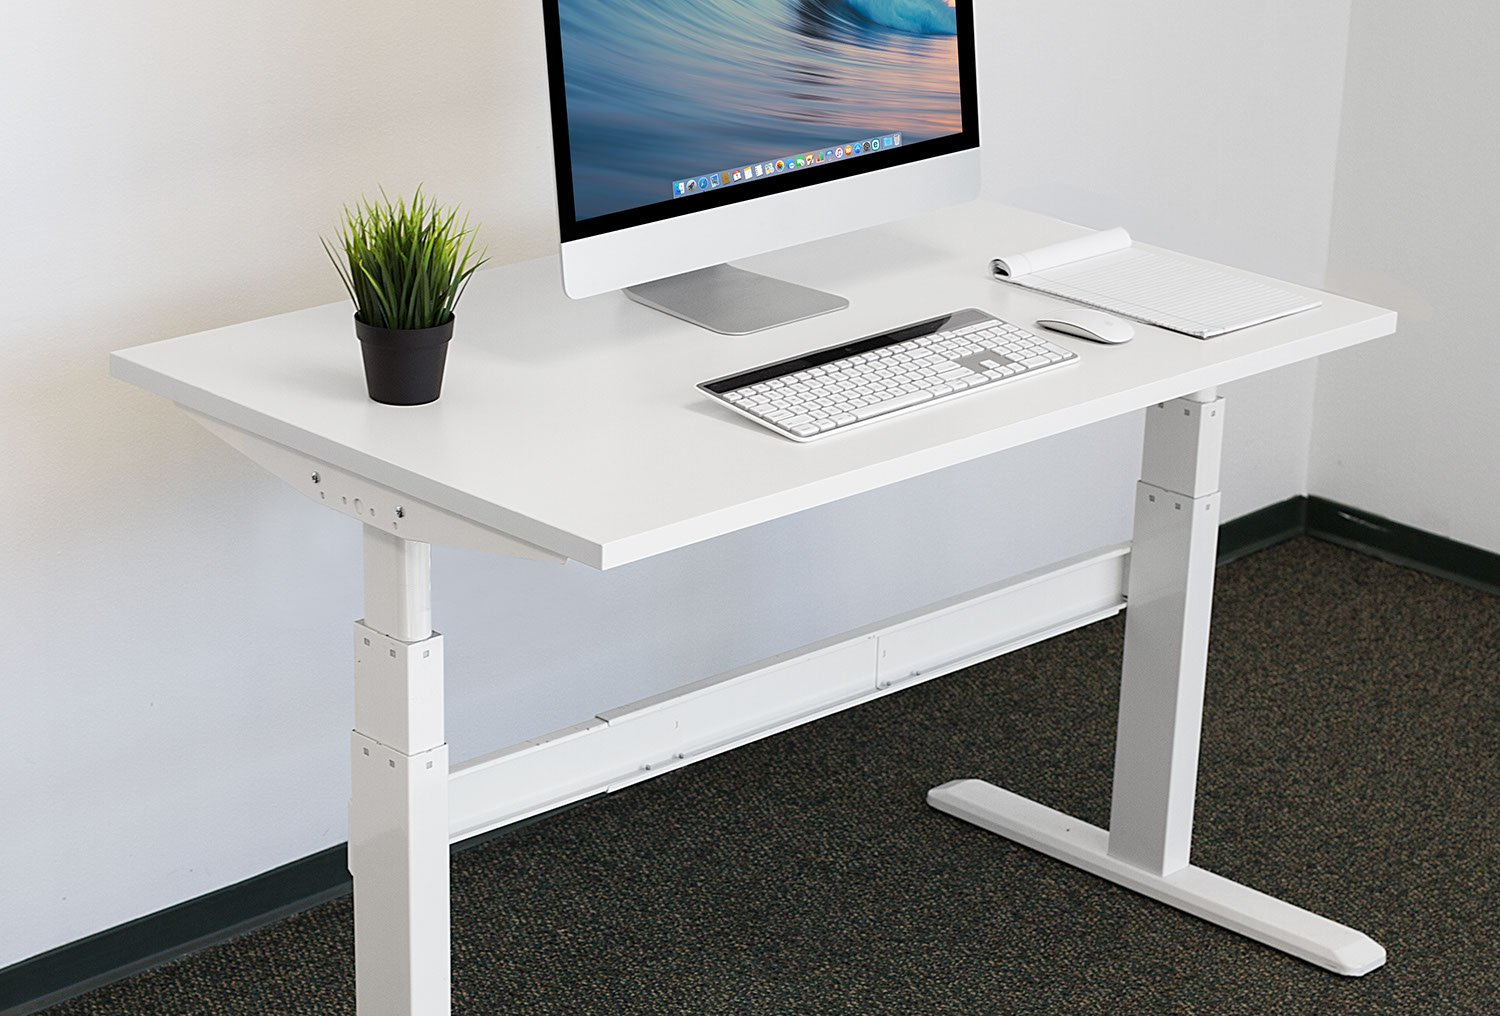 Mount-It Desk Table Top for Standing Desks – 48 Inch Wide x 29 Inch Deep, White